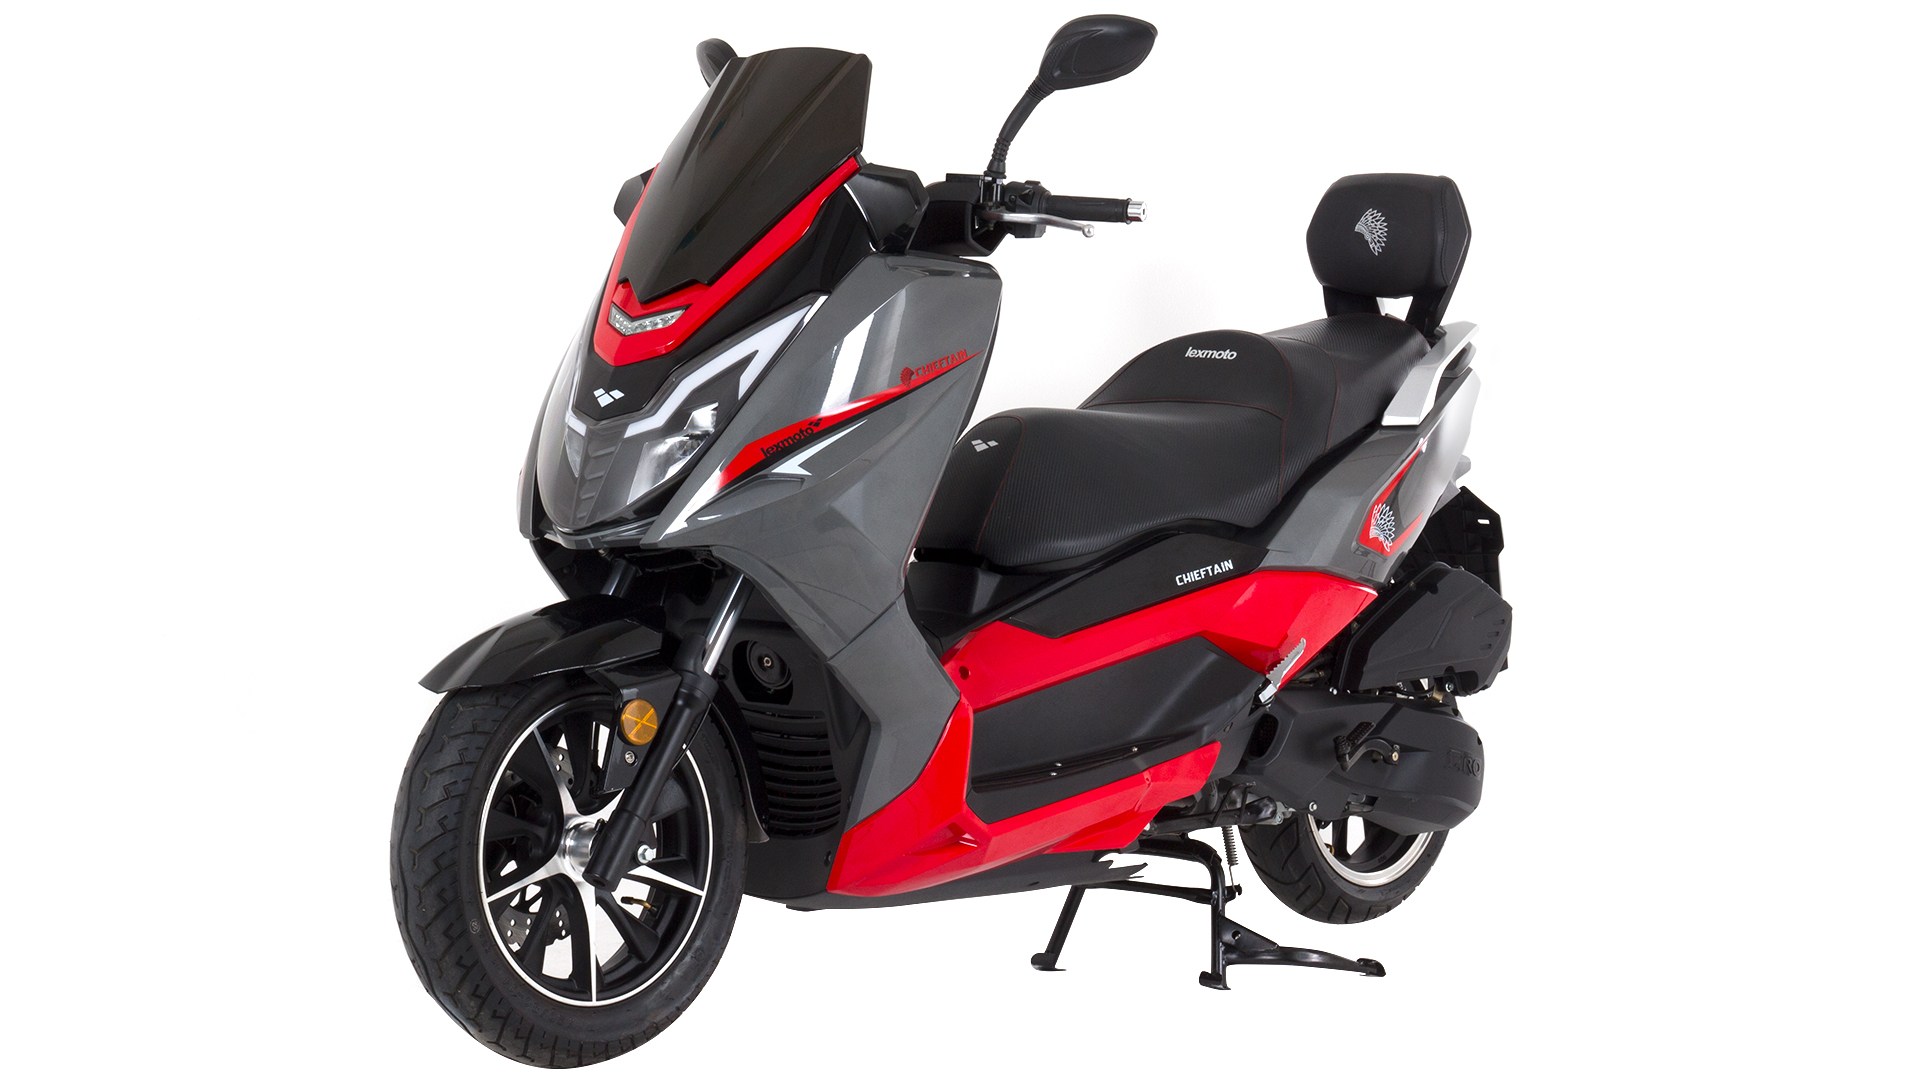 lexmoto chieftain 125 td125t 15 lexmoto scooters. Black Bedroom Furniture Sets. Home Design Ideas